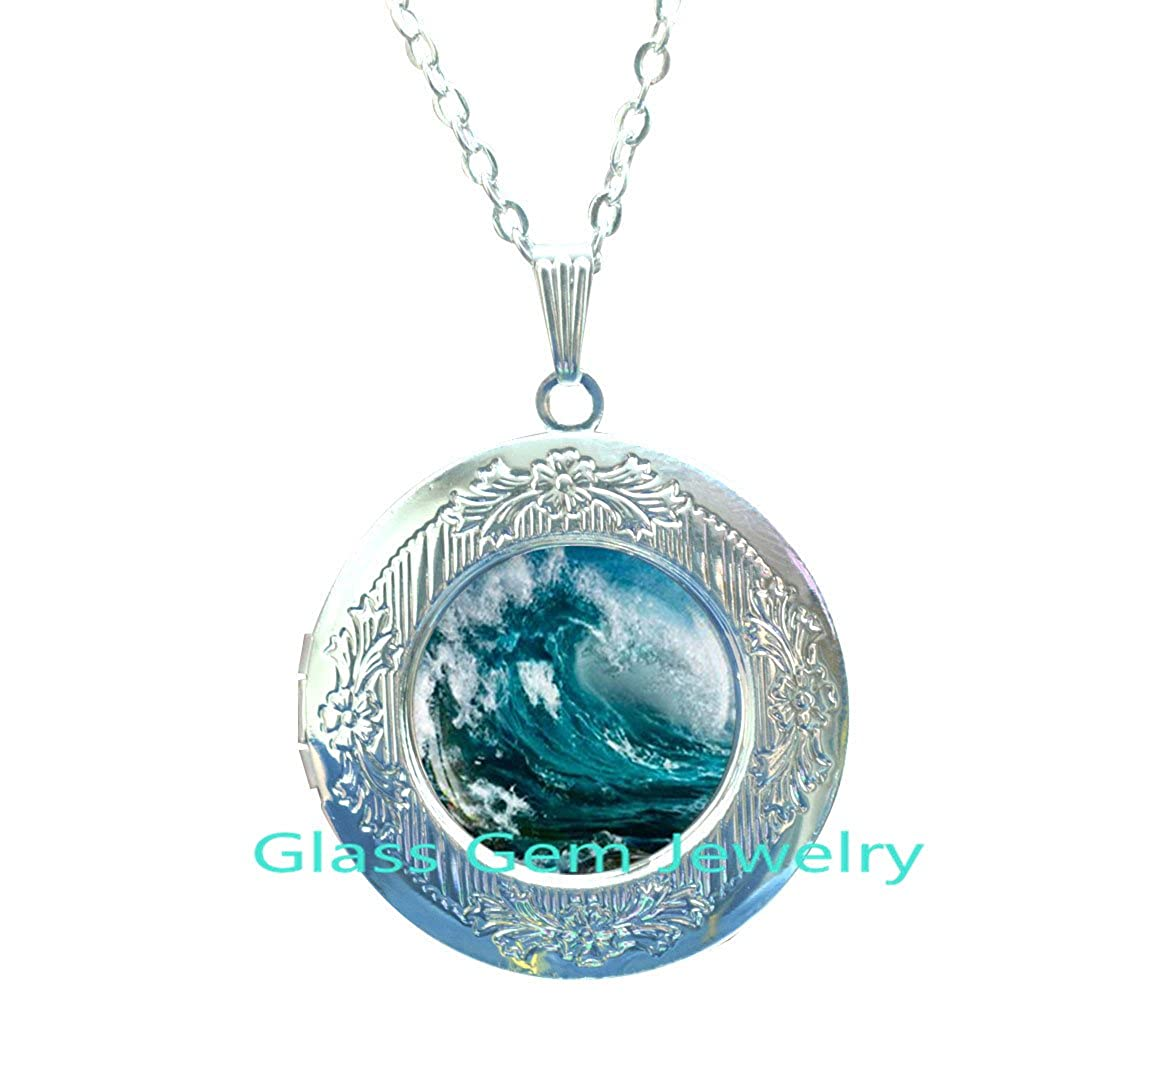 Gifts For Surfers Surfing Locket Necklace Surfboard,Q0044 Water Sport Ocean Wave Locket Necklace Water Wave Locket Necklace Ocean Wave Locket Pendant Wave Locket Necklace